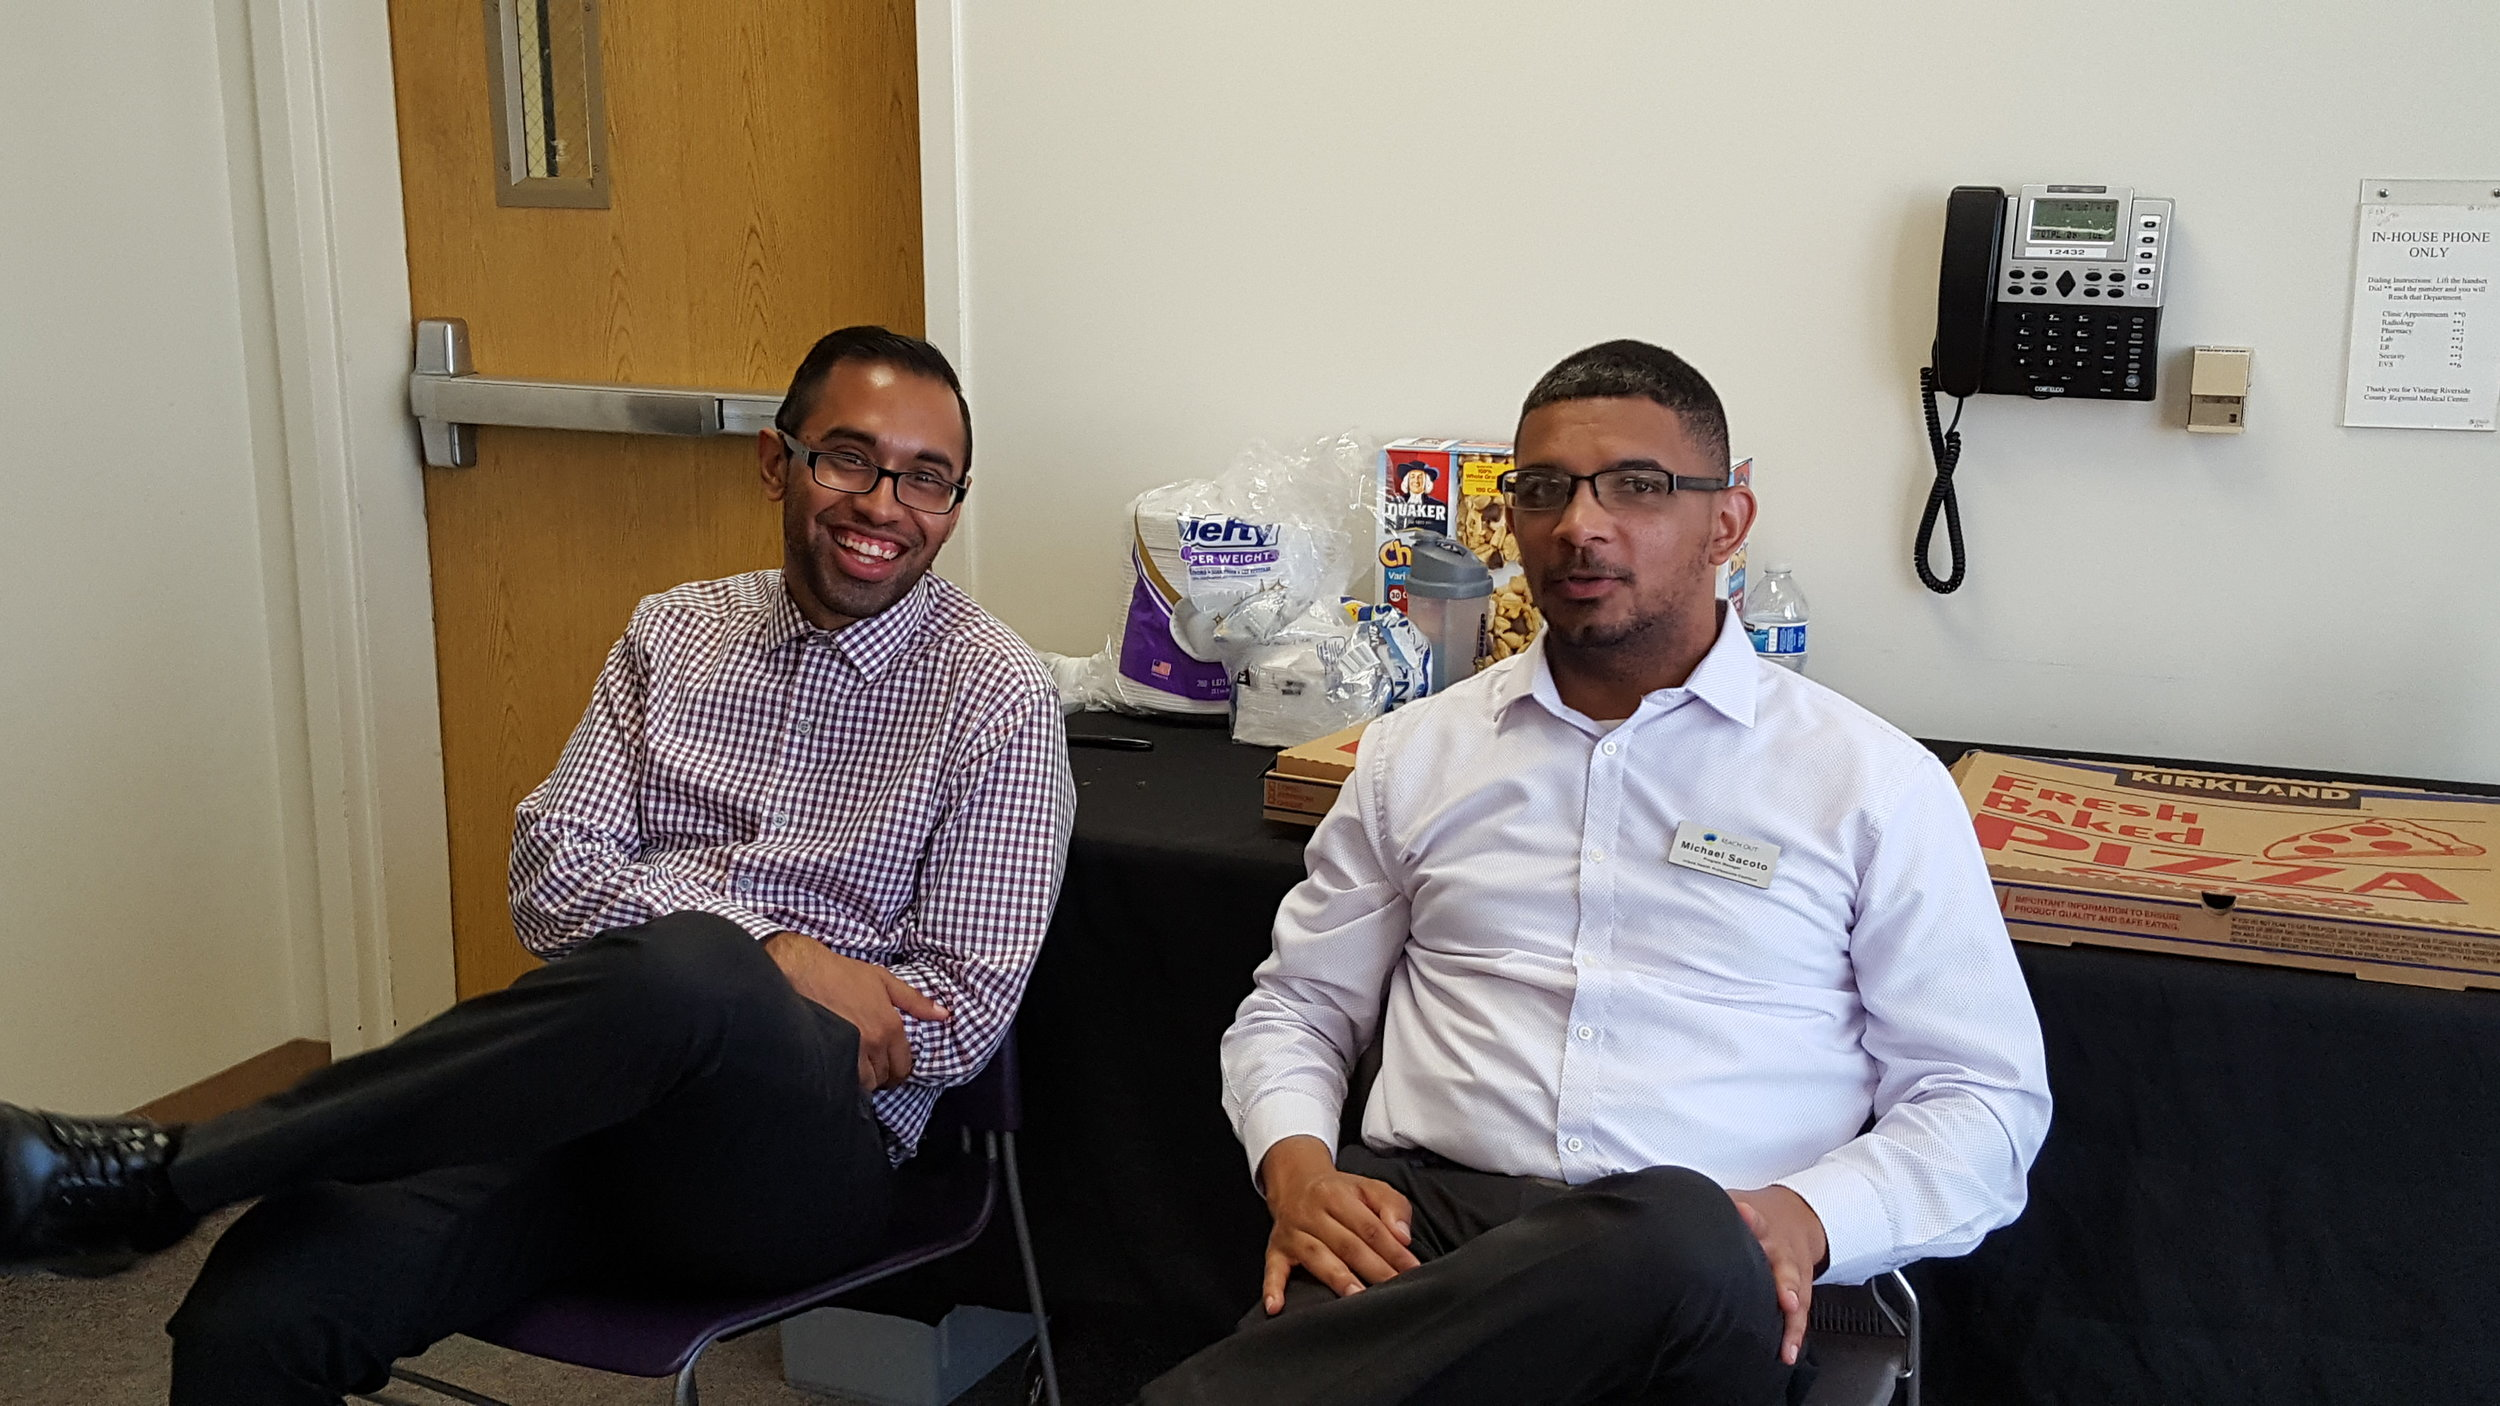 Program managers Rehman and Michael.